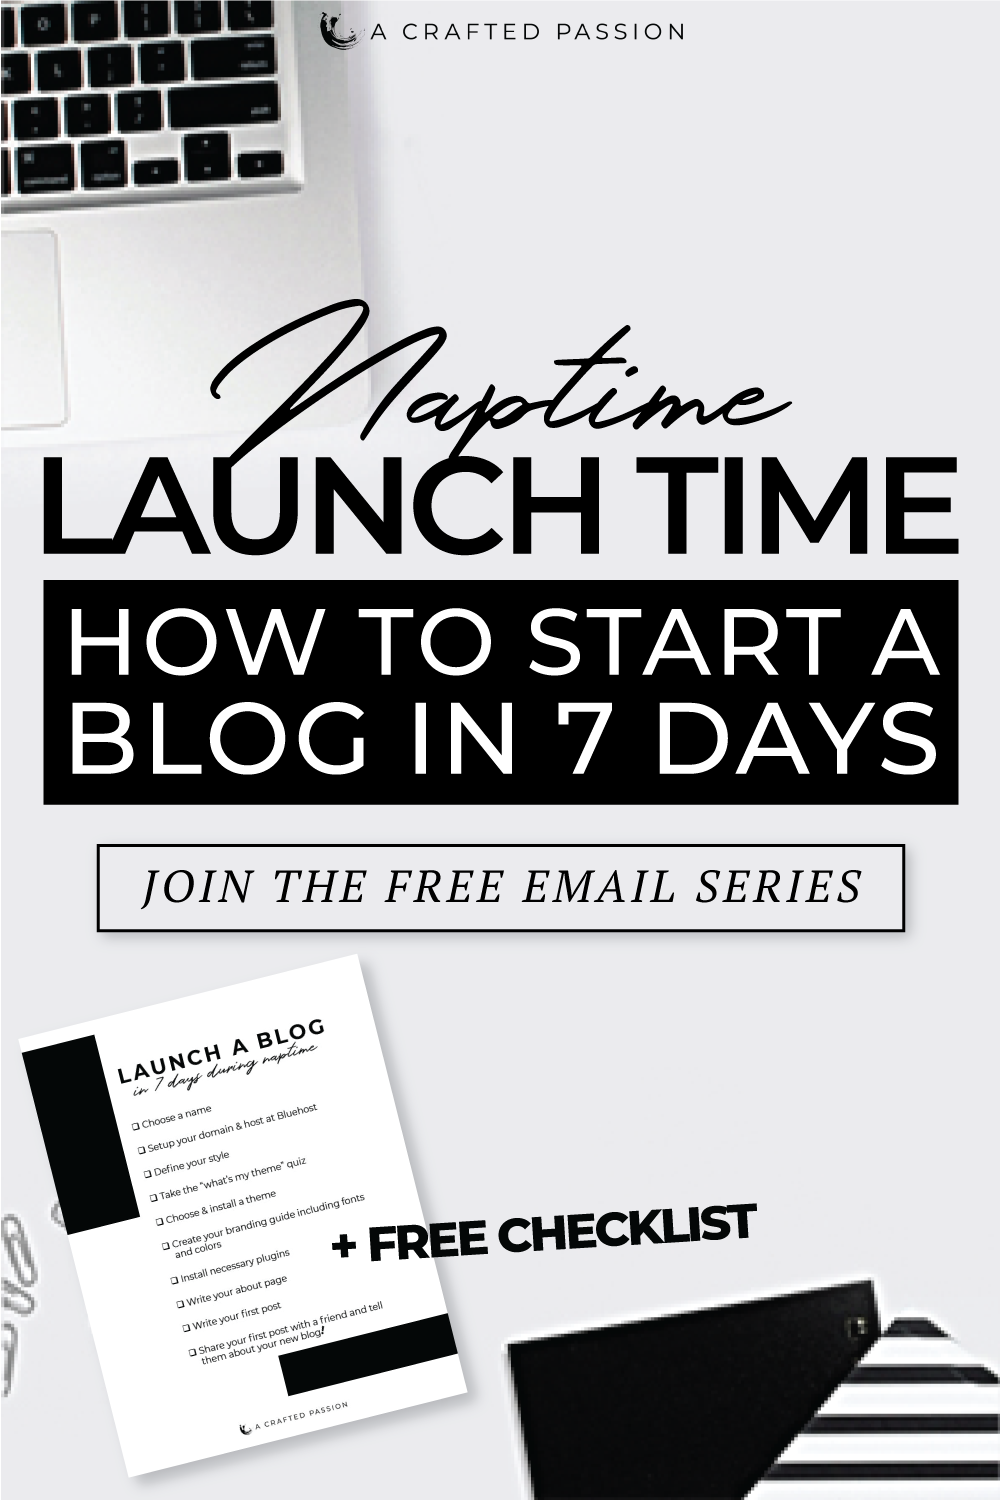 Ready to start a blog, but not sure where to start? Join this free challenge tolaunch your blog in just 7 daysbroken down in simple, actionable steps so you can get it done during naptime this week! Get the lessons sent directly to your inbox. #startablog #diyblog #blogger